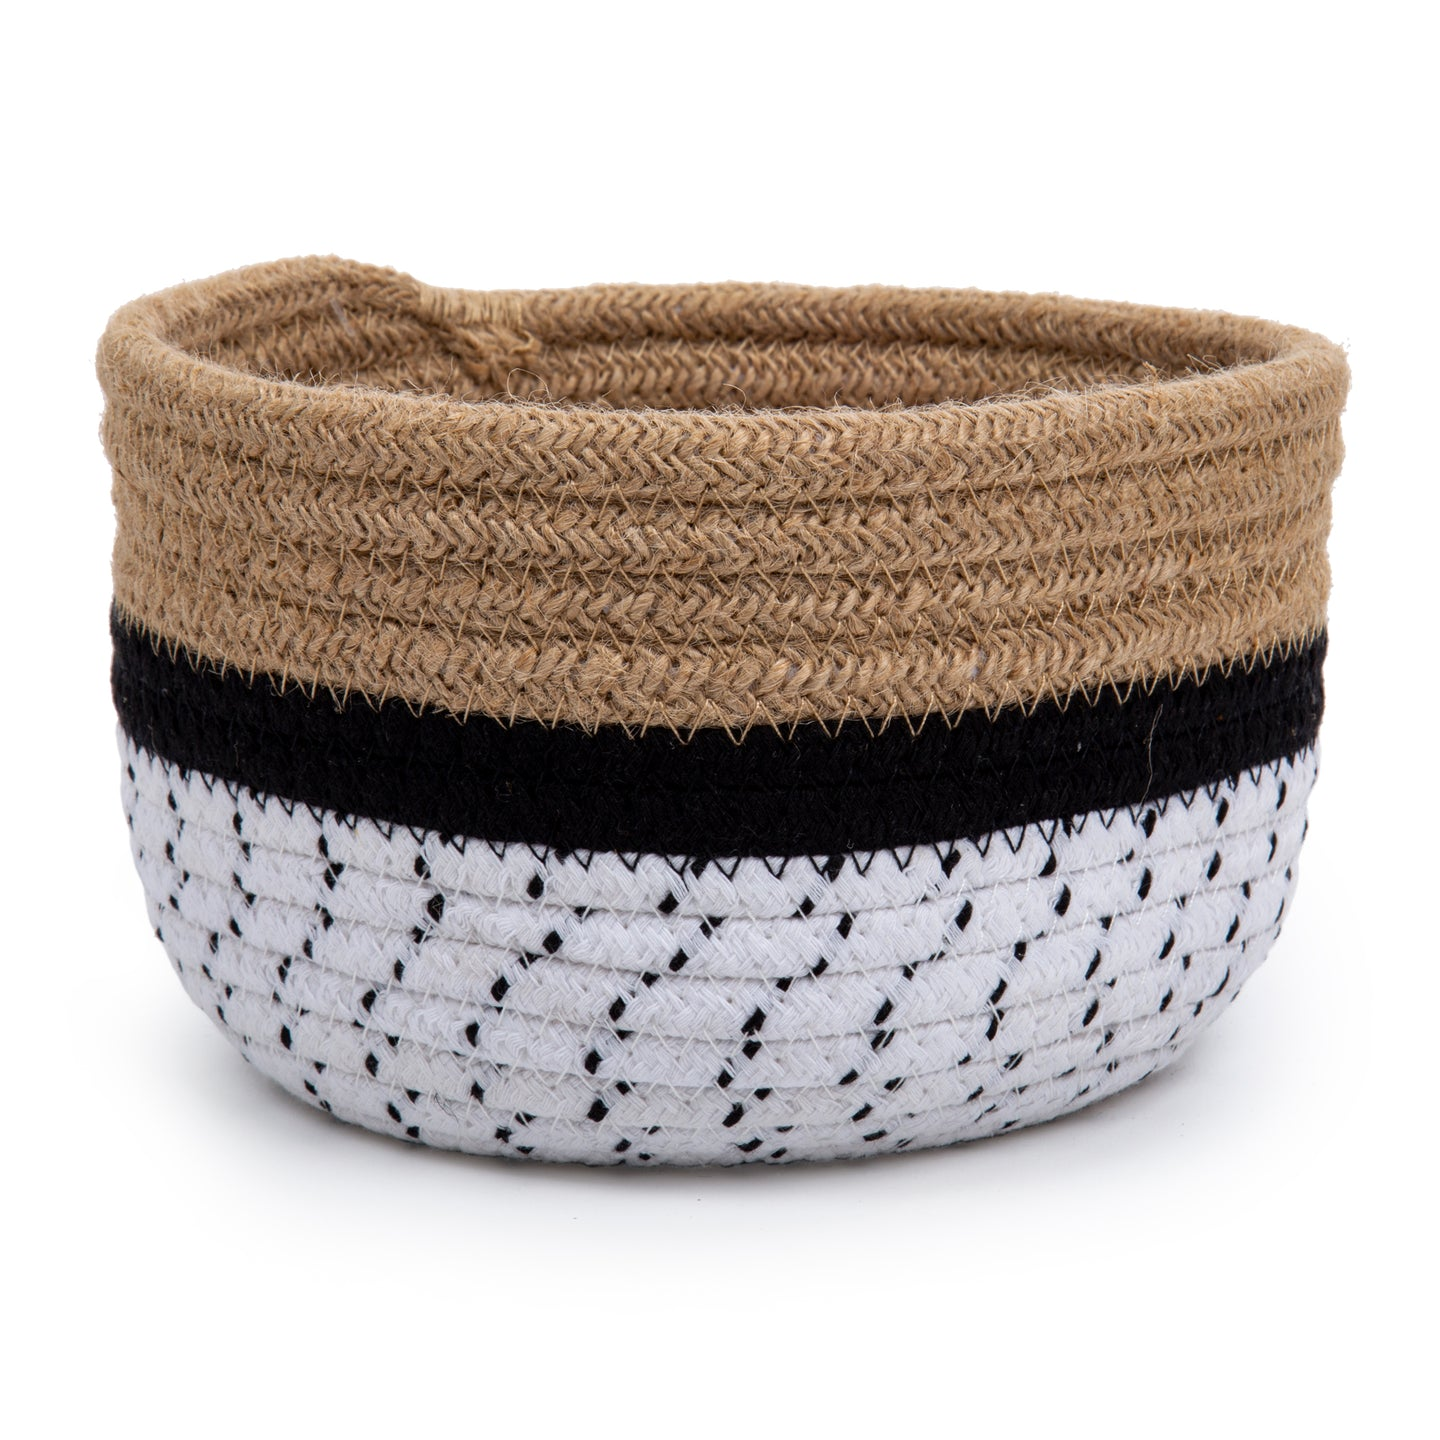 Cotton/Jute Storage Basket